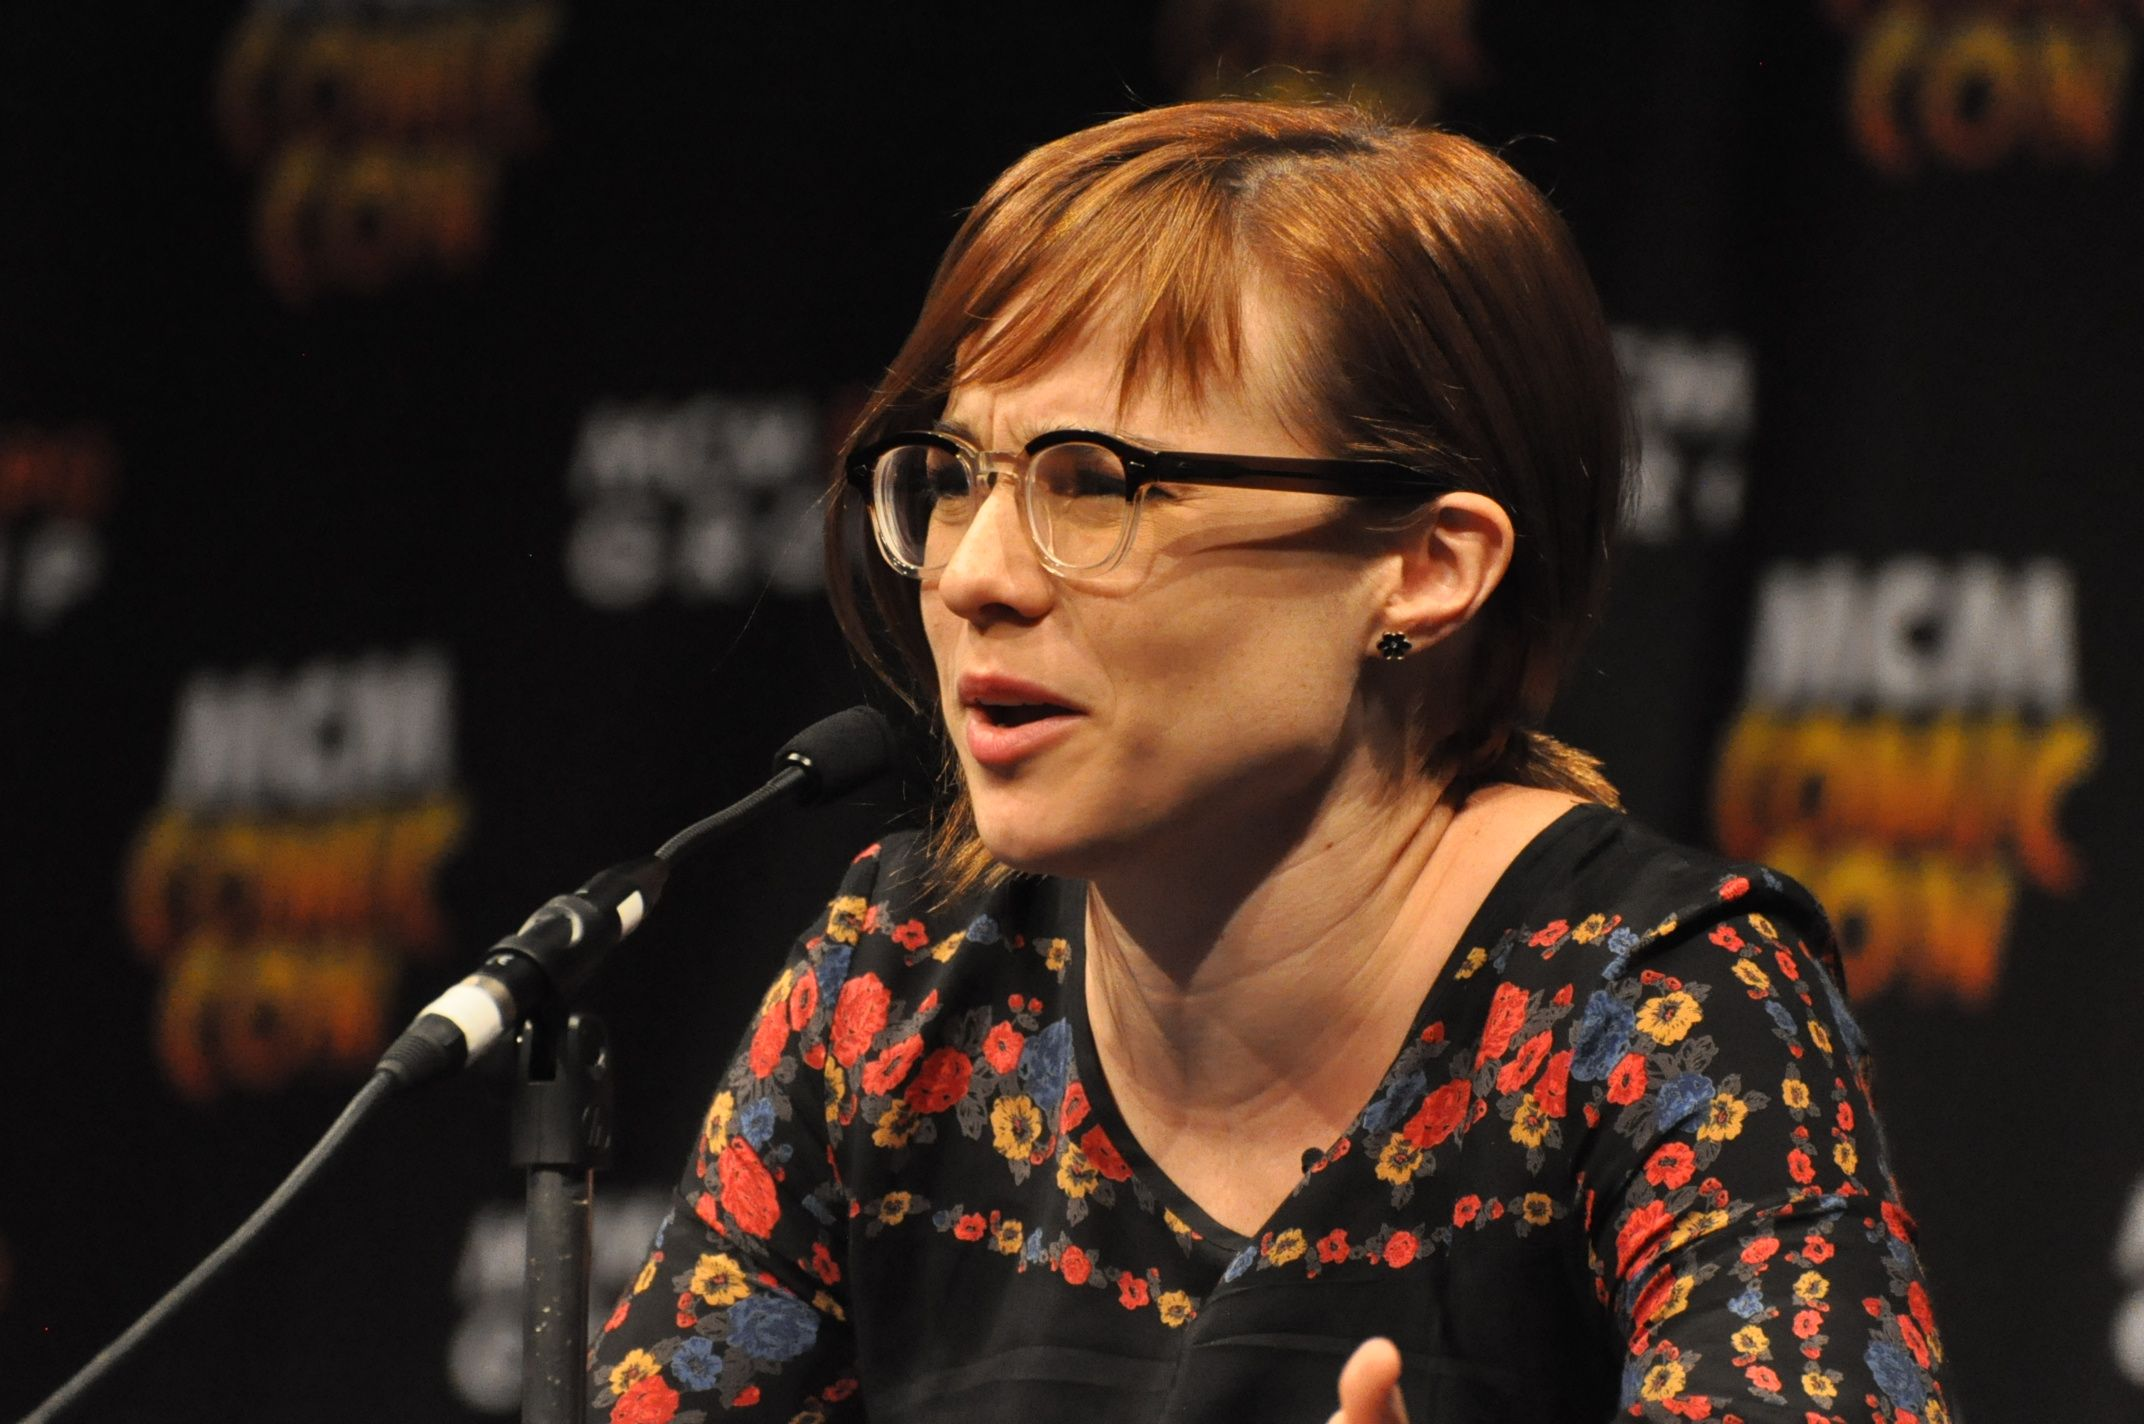 A woman with red hair speaking into a microphone.